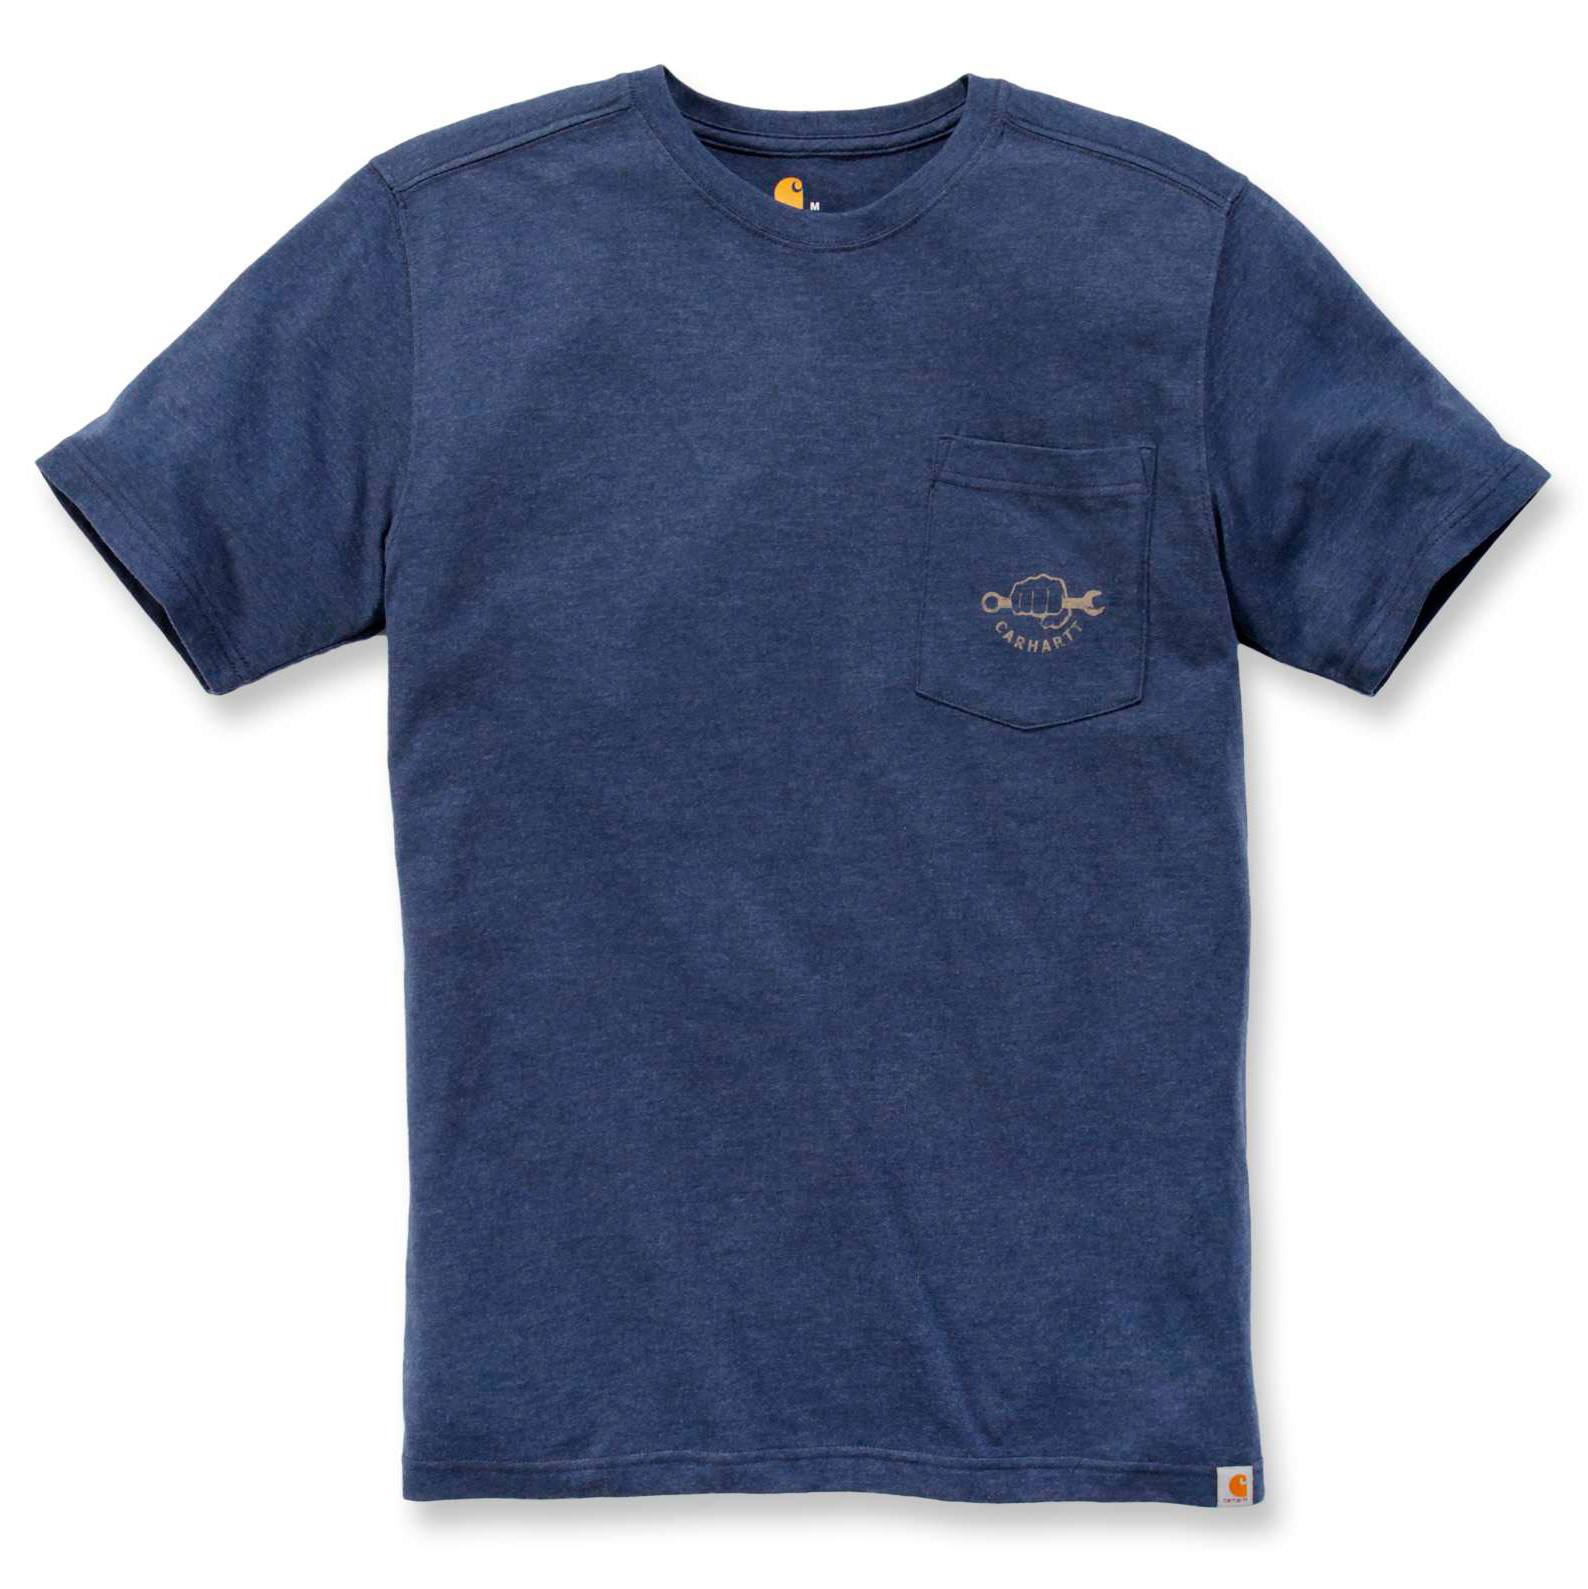 Футболка Carhartt Maddock Strong Graphic S/S T-Shirt - 103565 (Indigo Heather, S)